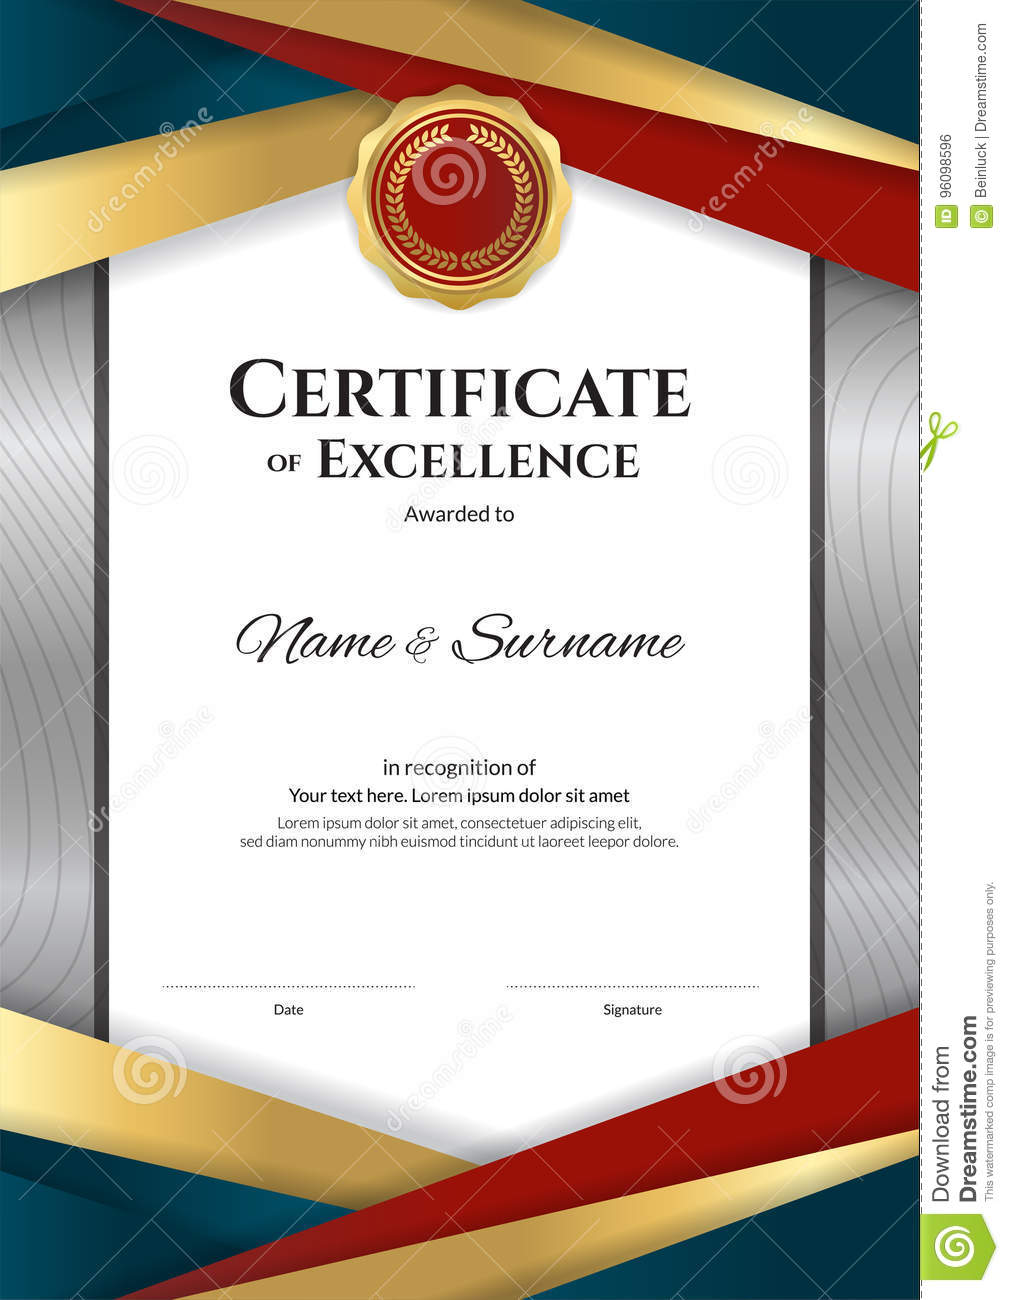 Portrait luxury certificate template with elegant border frame portrait luxury certificate template with elegant border frame background coupon yadclub Choice Image